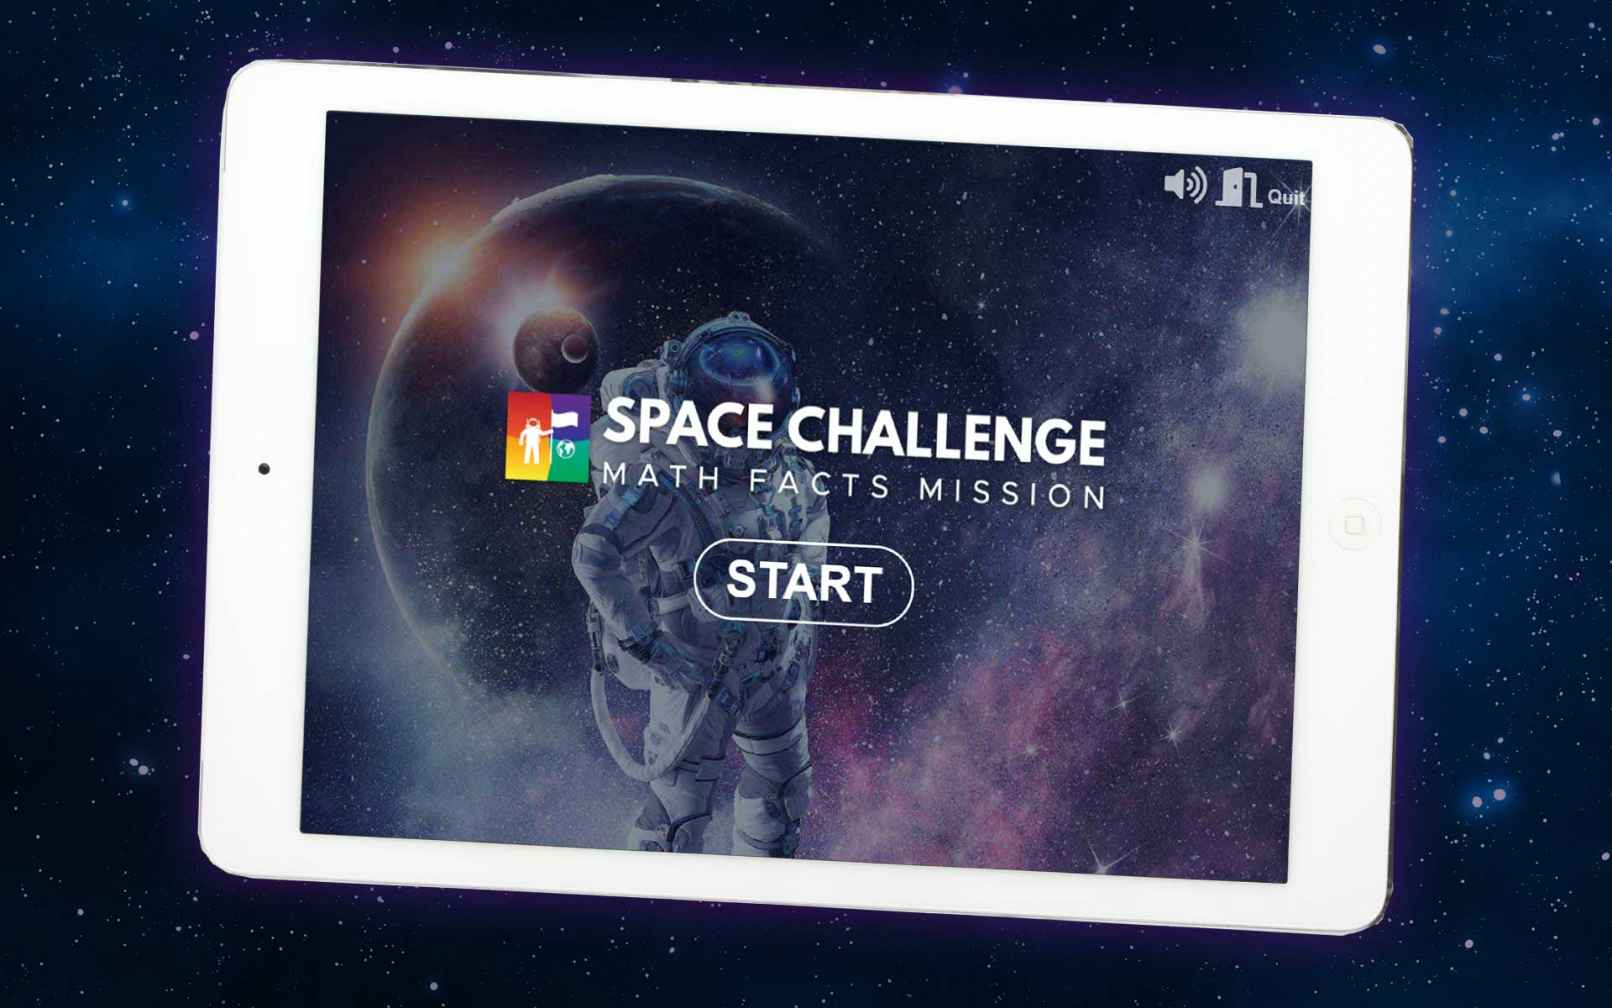 Space Challenge math facts game